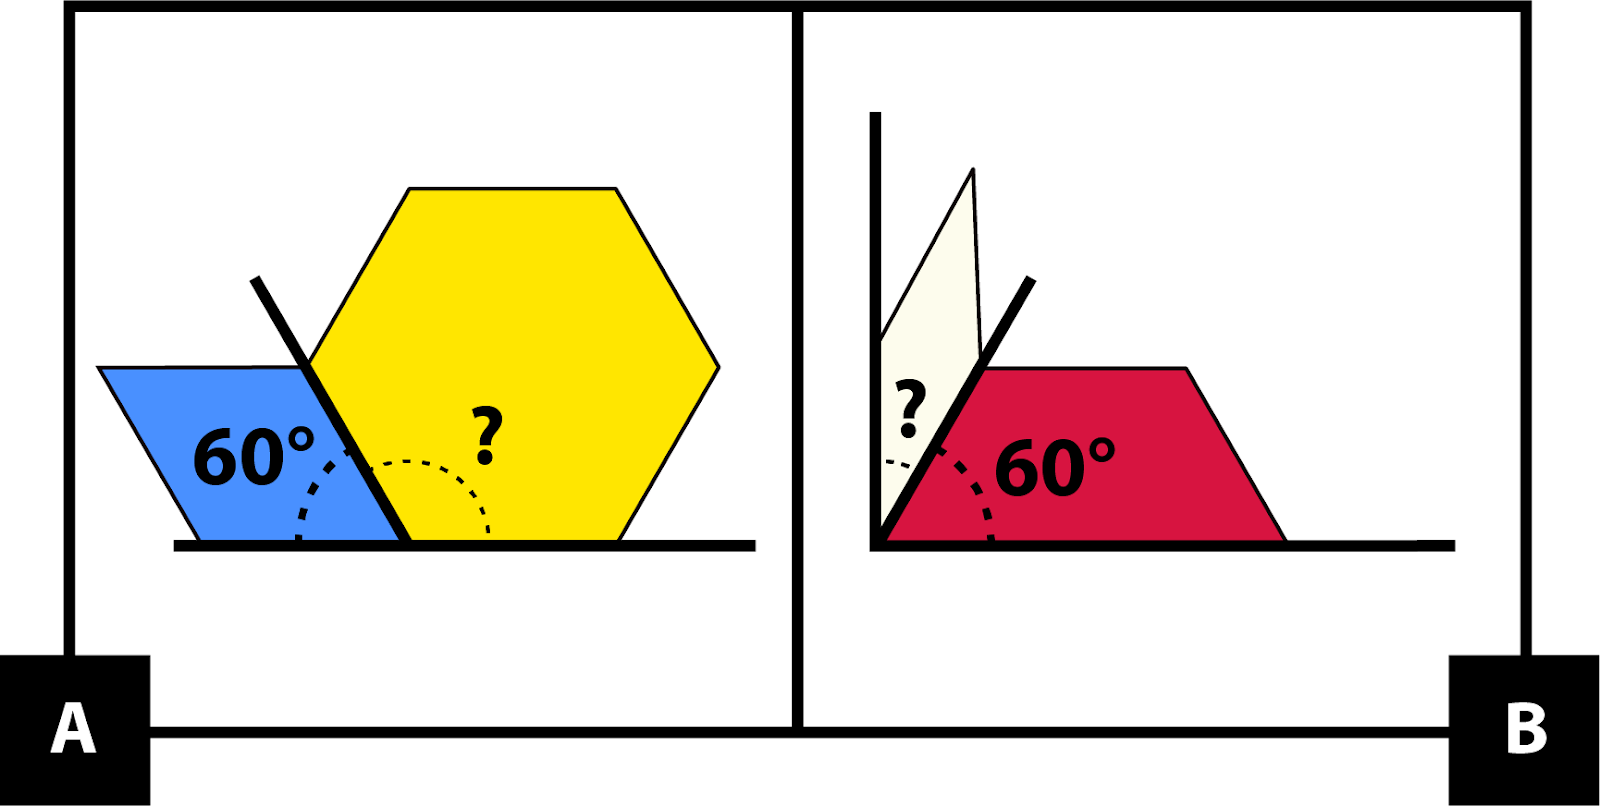 A: A parallelogram next to a hexagon on a line. The parallelogram has an angle of 60 degrees. The angle of the hexagon is unknown. B: A rhombus and a trapezoid form a right angle. The trapezoid has an angle of 60 degrees. The angle of the rhombus is unknown.